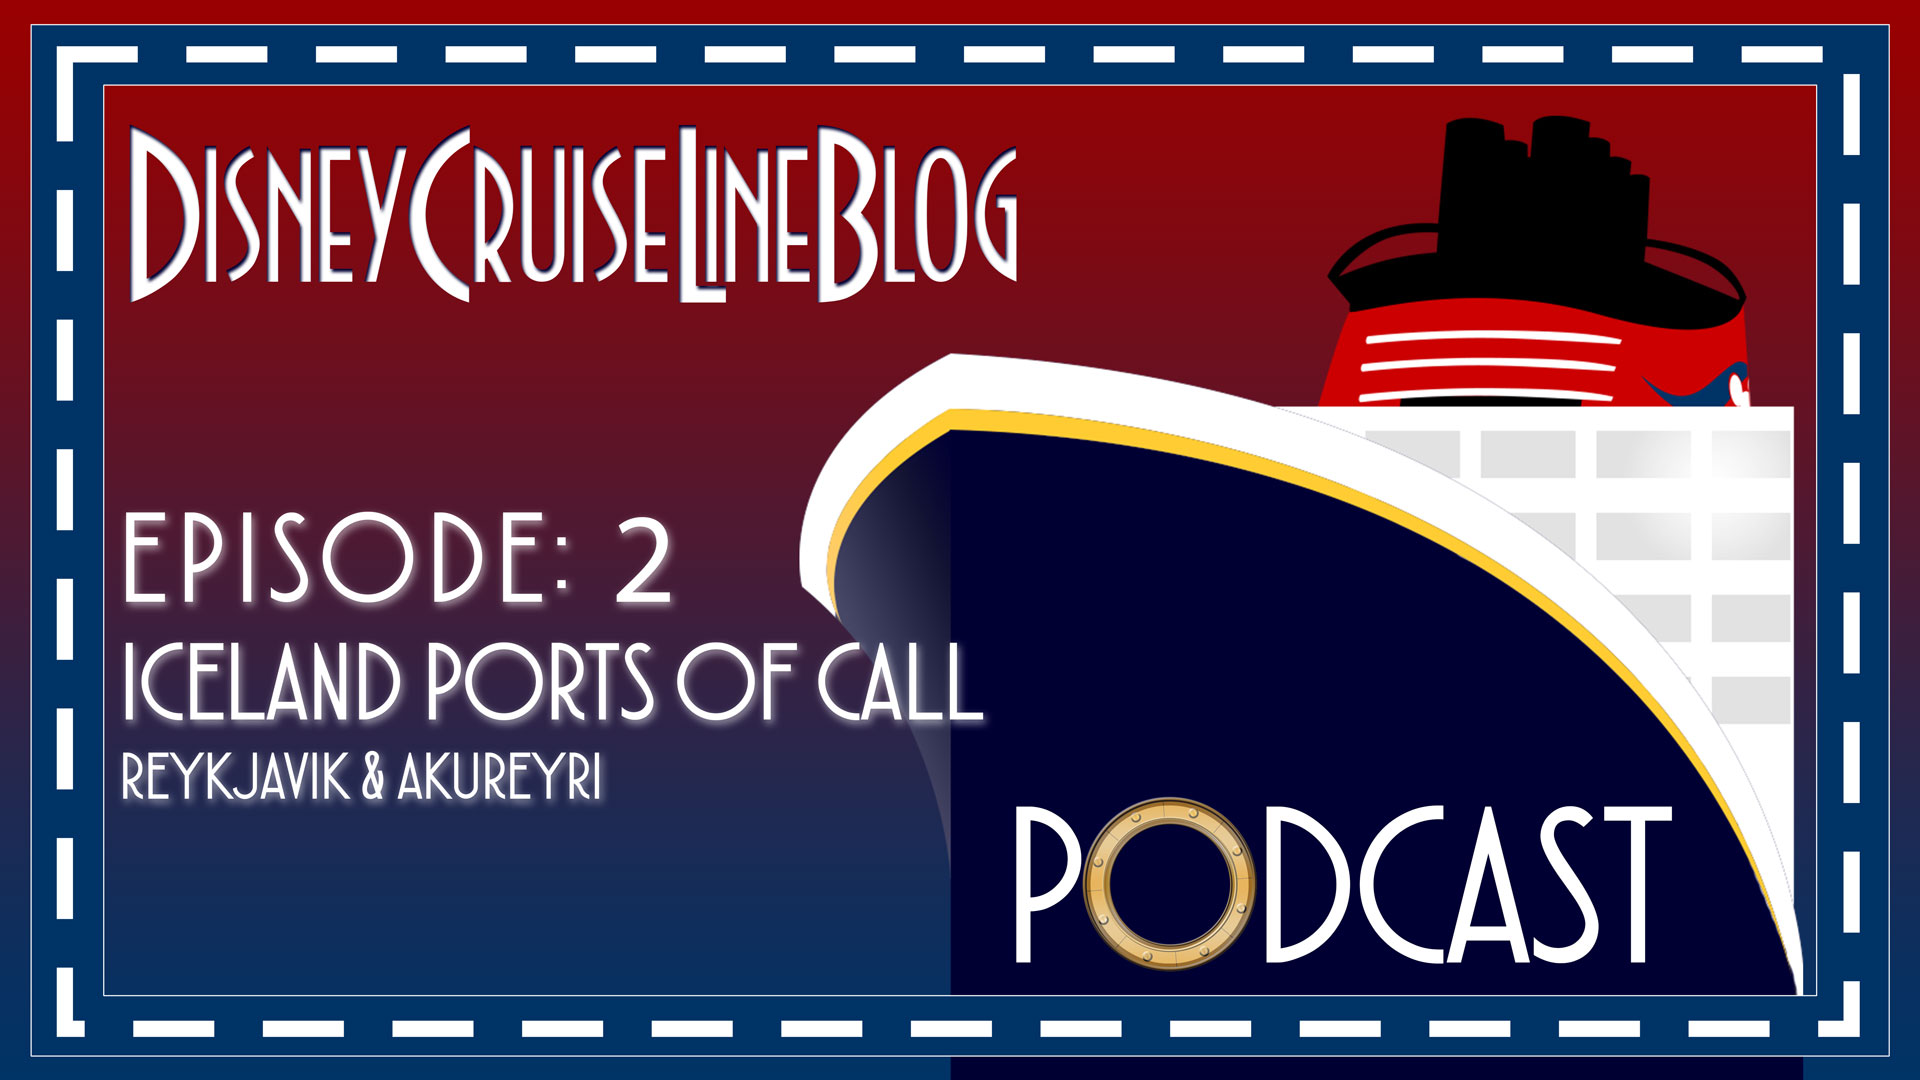 DCL Blog Podcast Episode 2 Iceland Ports Of Call Reykjavik Akureyri